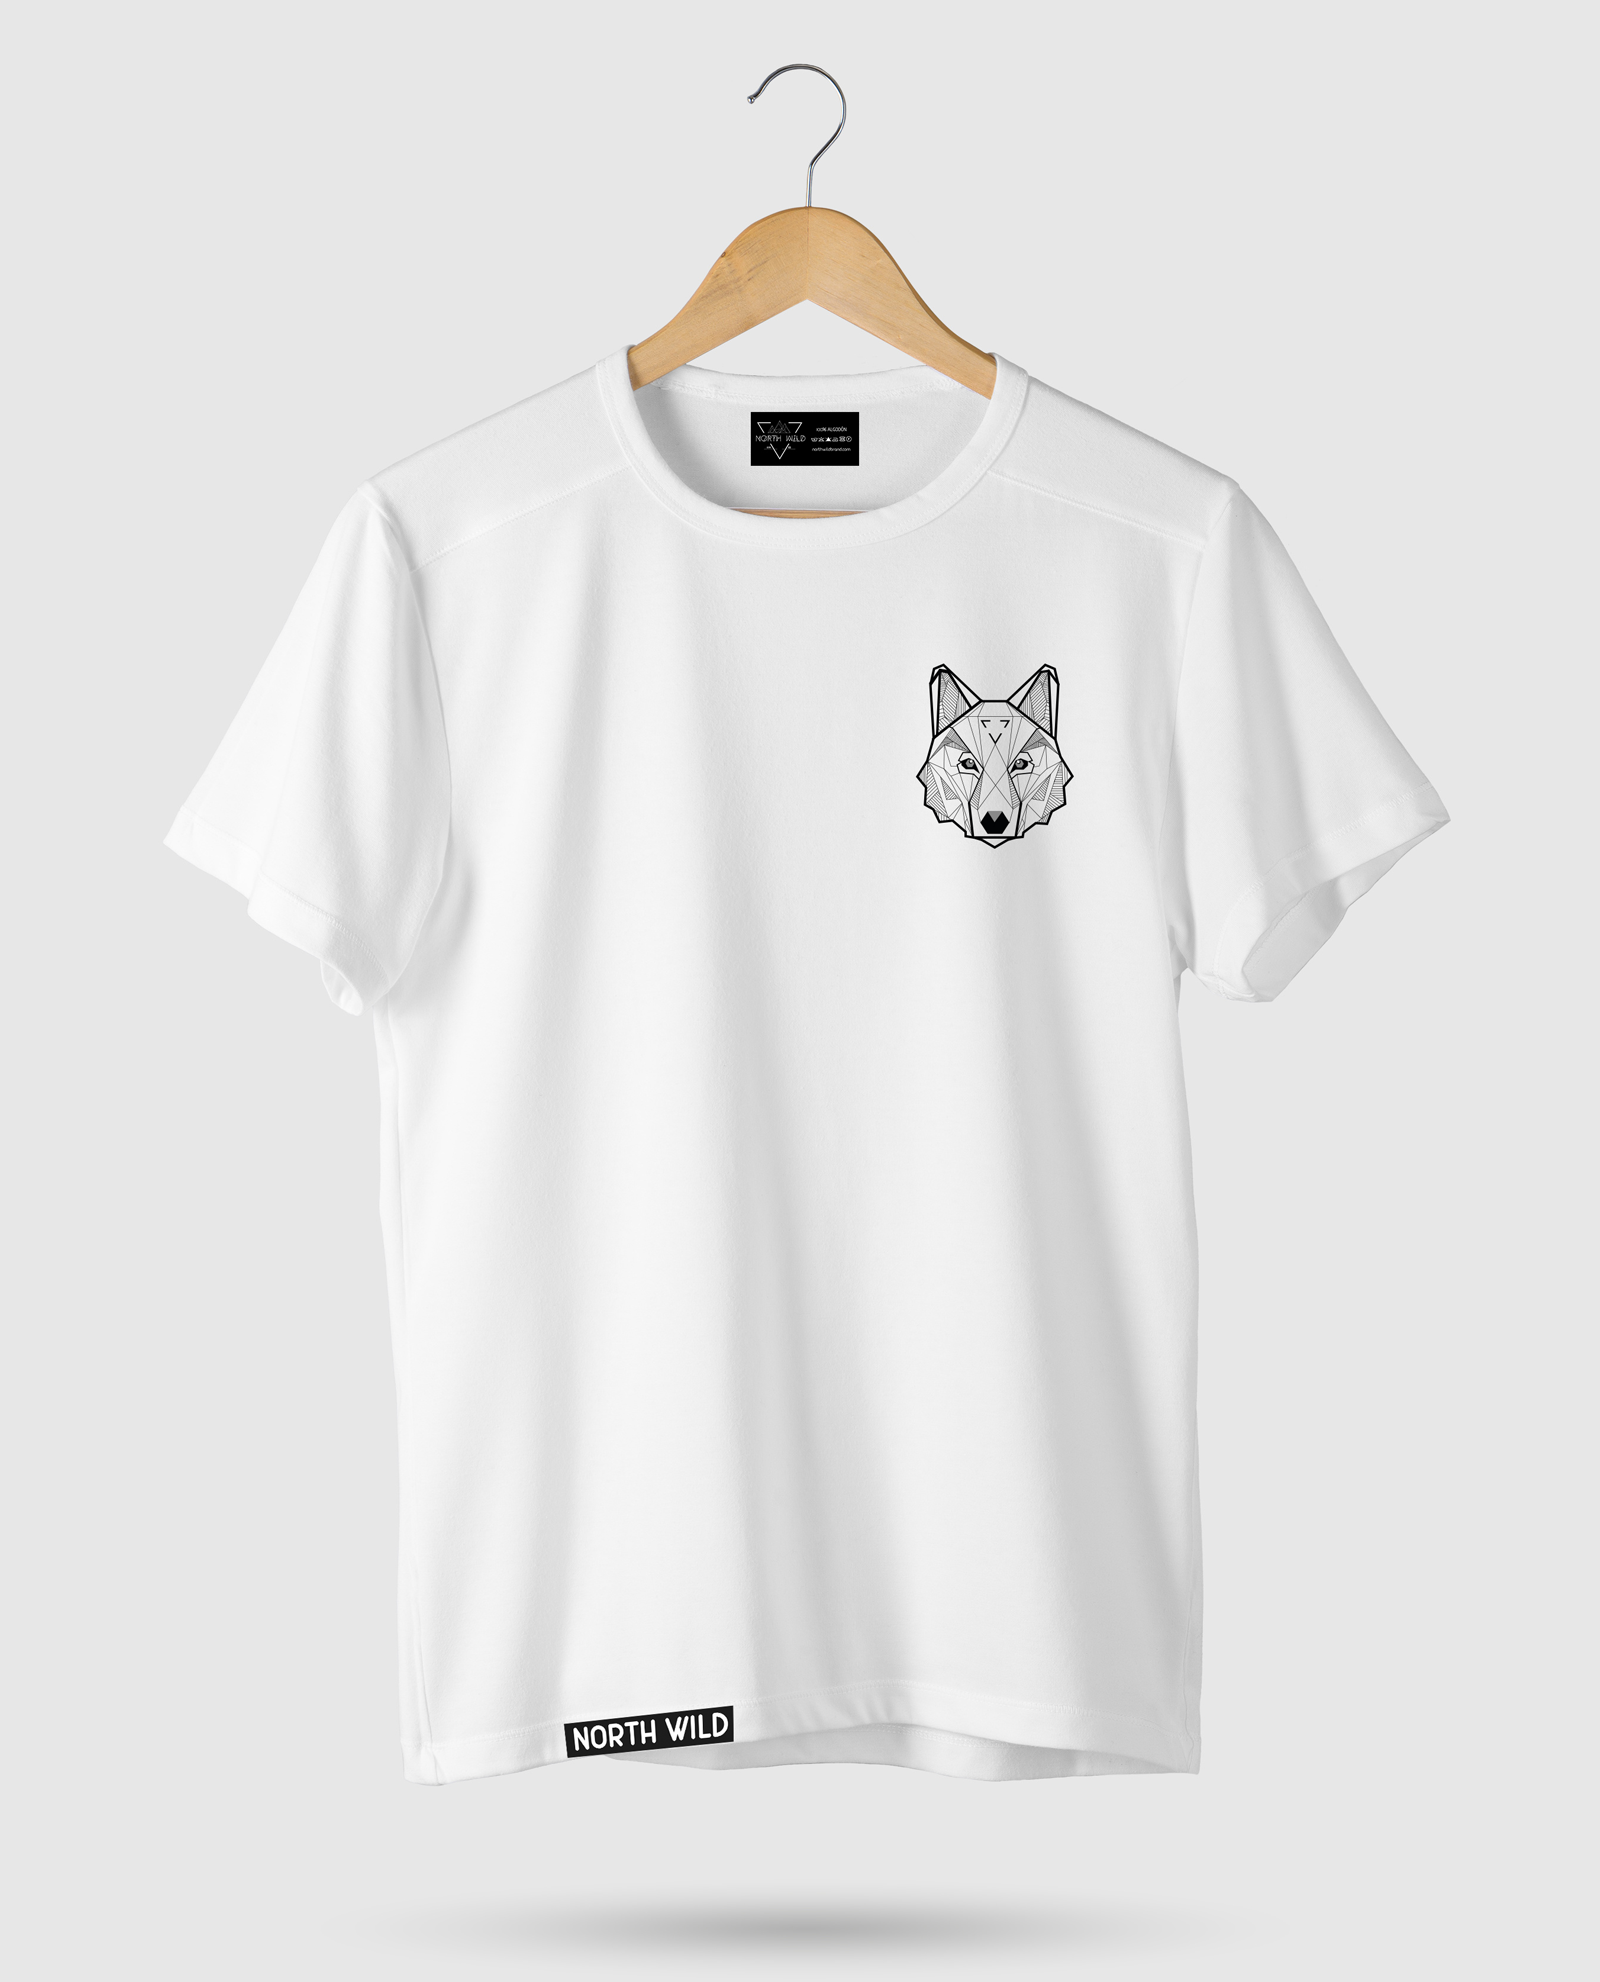 2af6422082683 Camiseta Animal Wolf - North Wild Brand